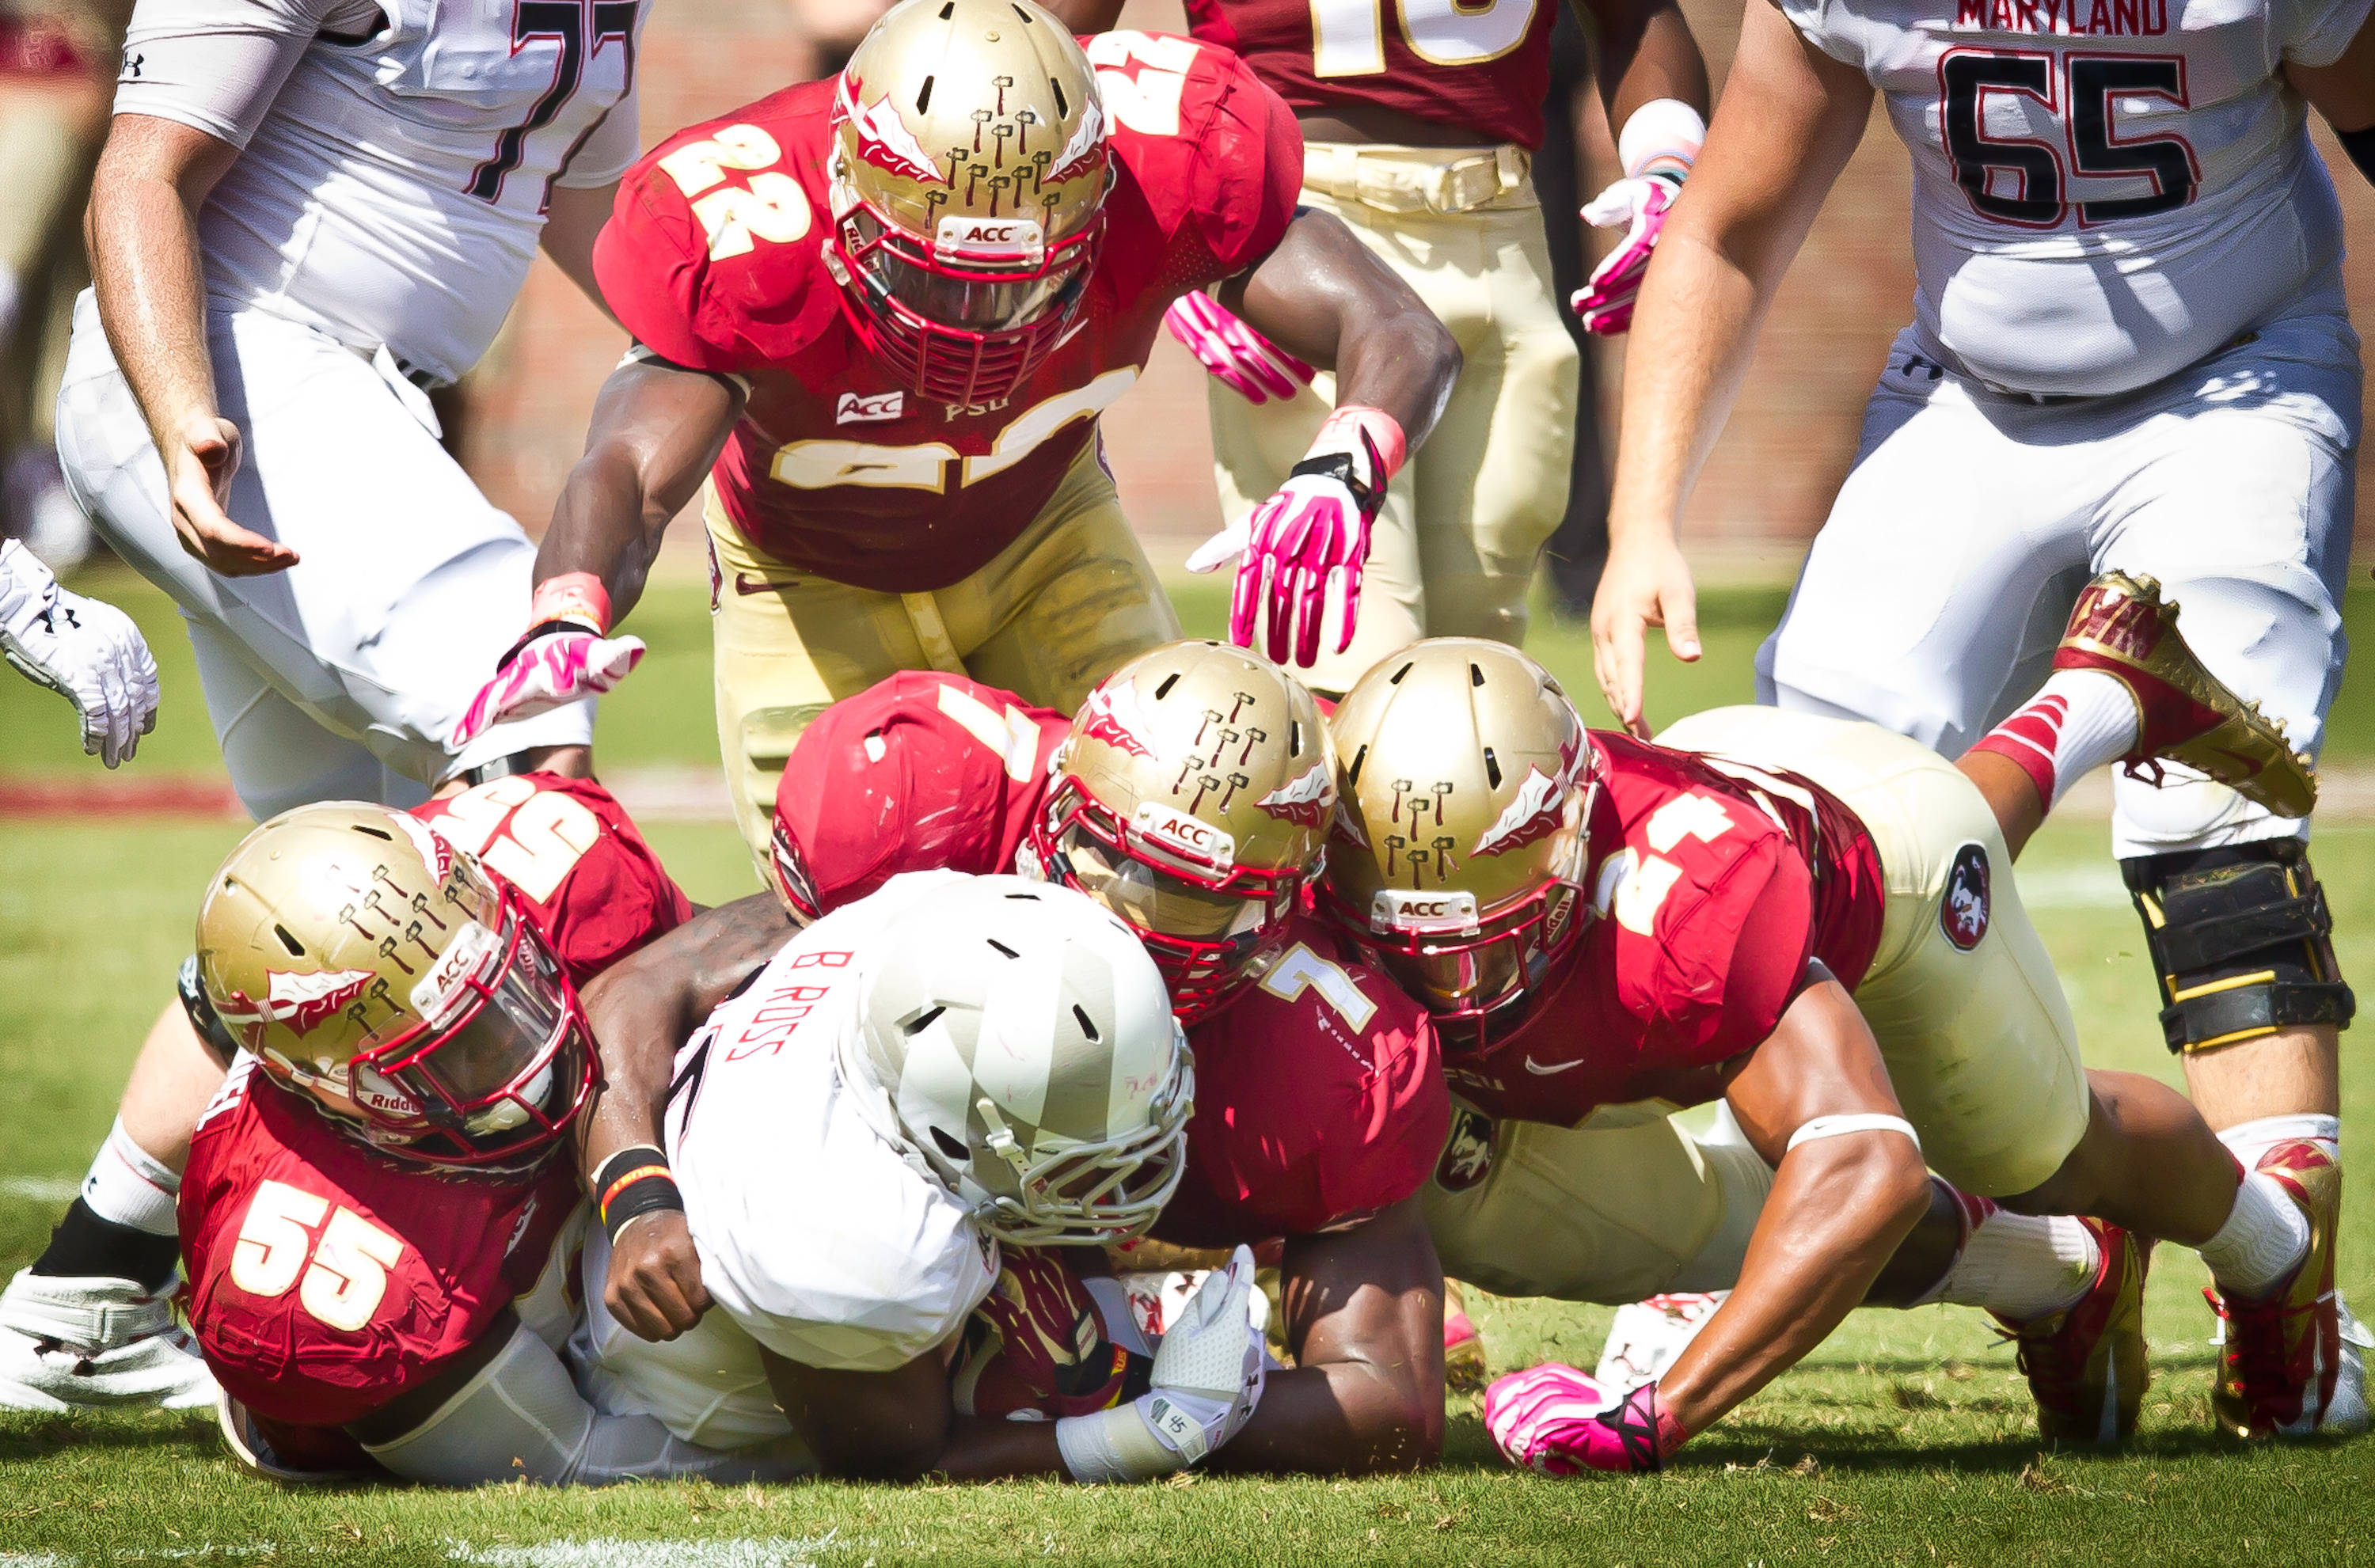 The FSU defense turned in a dominating performance.